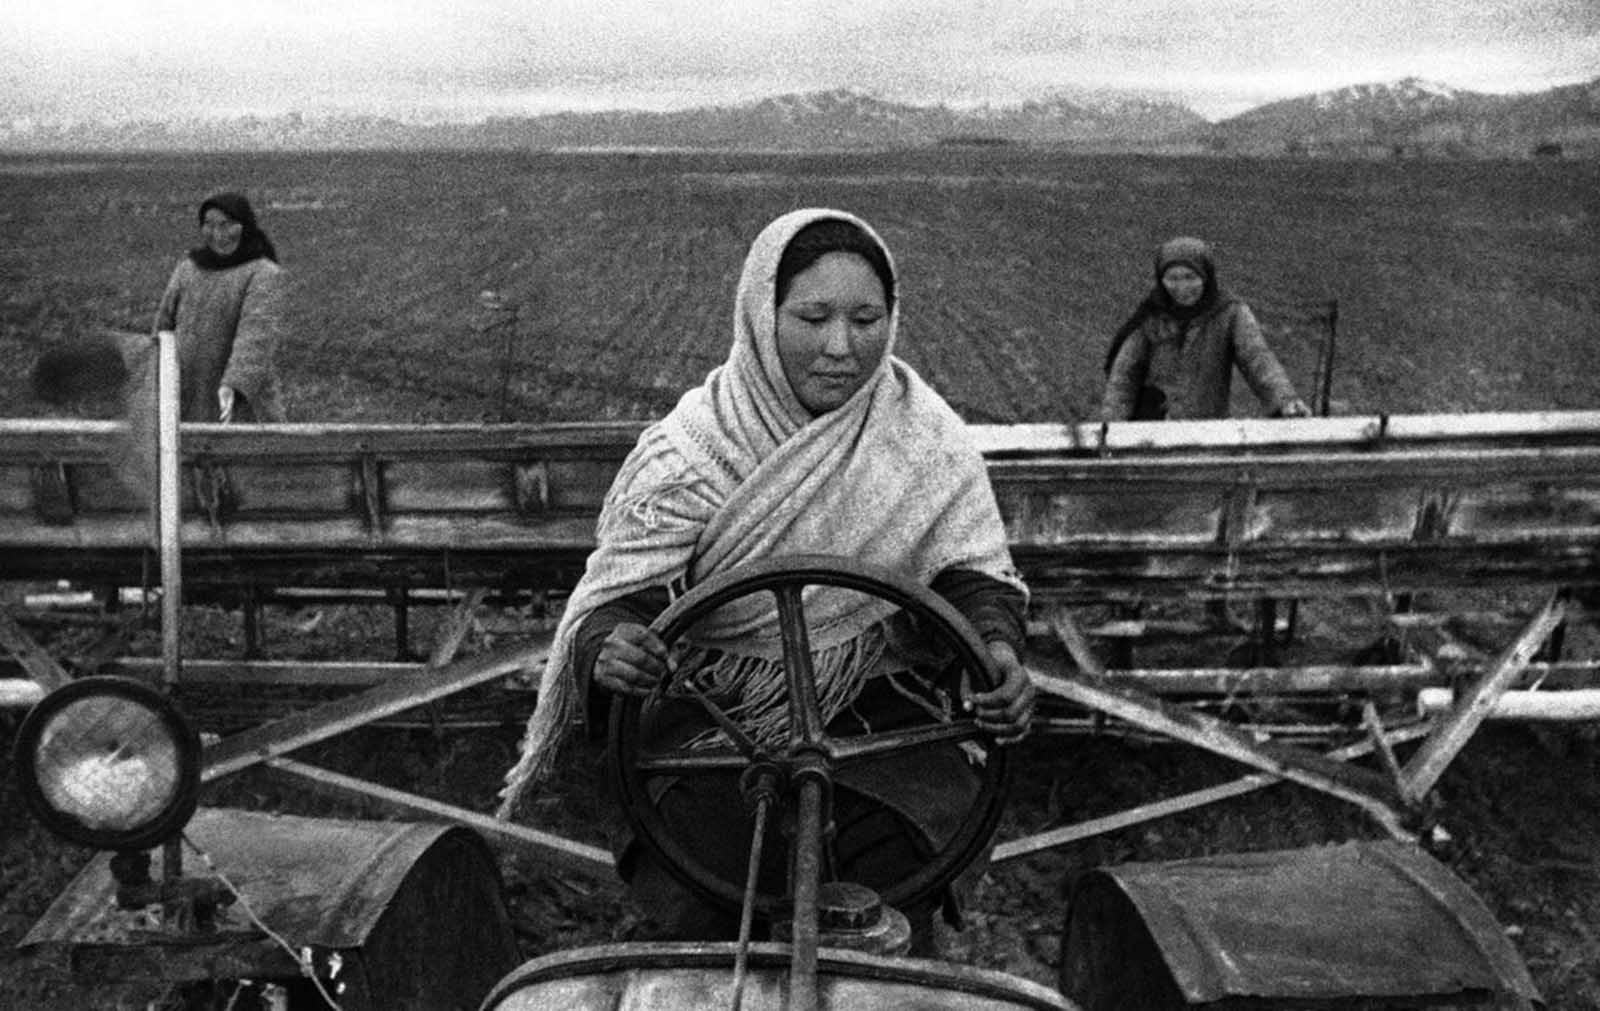 Young Soviet girl tractor-drivers of Kirghizia (now Kyrgyzstan), efficiently replace their friends, brothers and fathers who went to the front. Here, a girl tractor driver sows sugar beets on August 26, 1942.